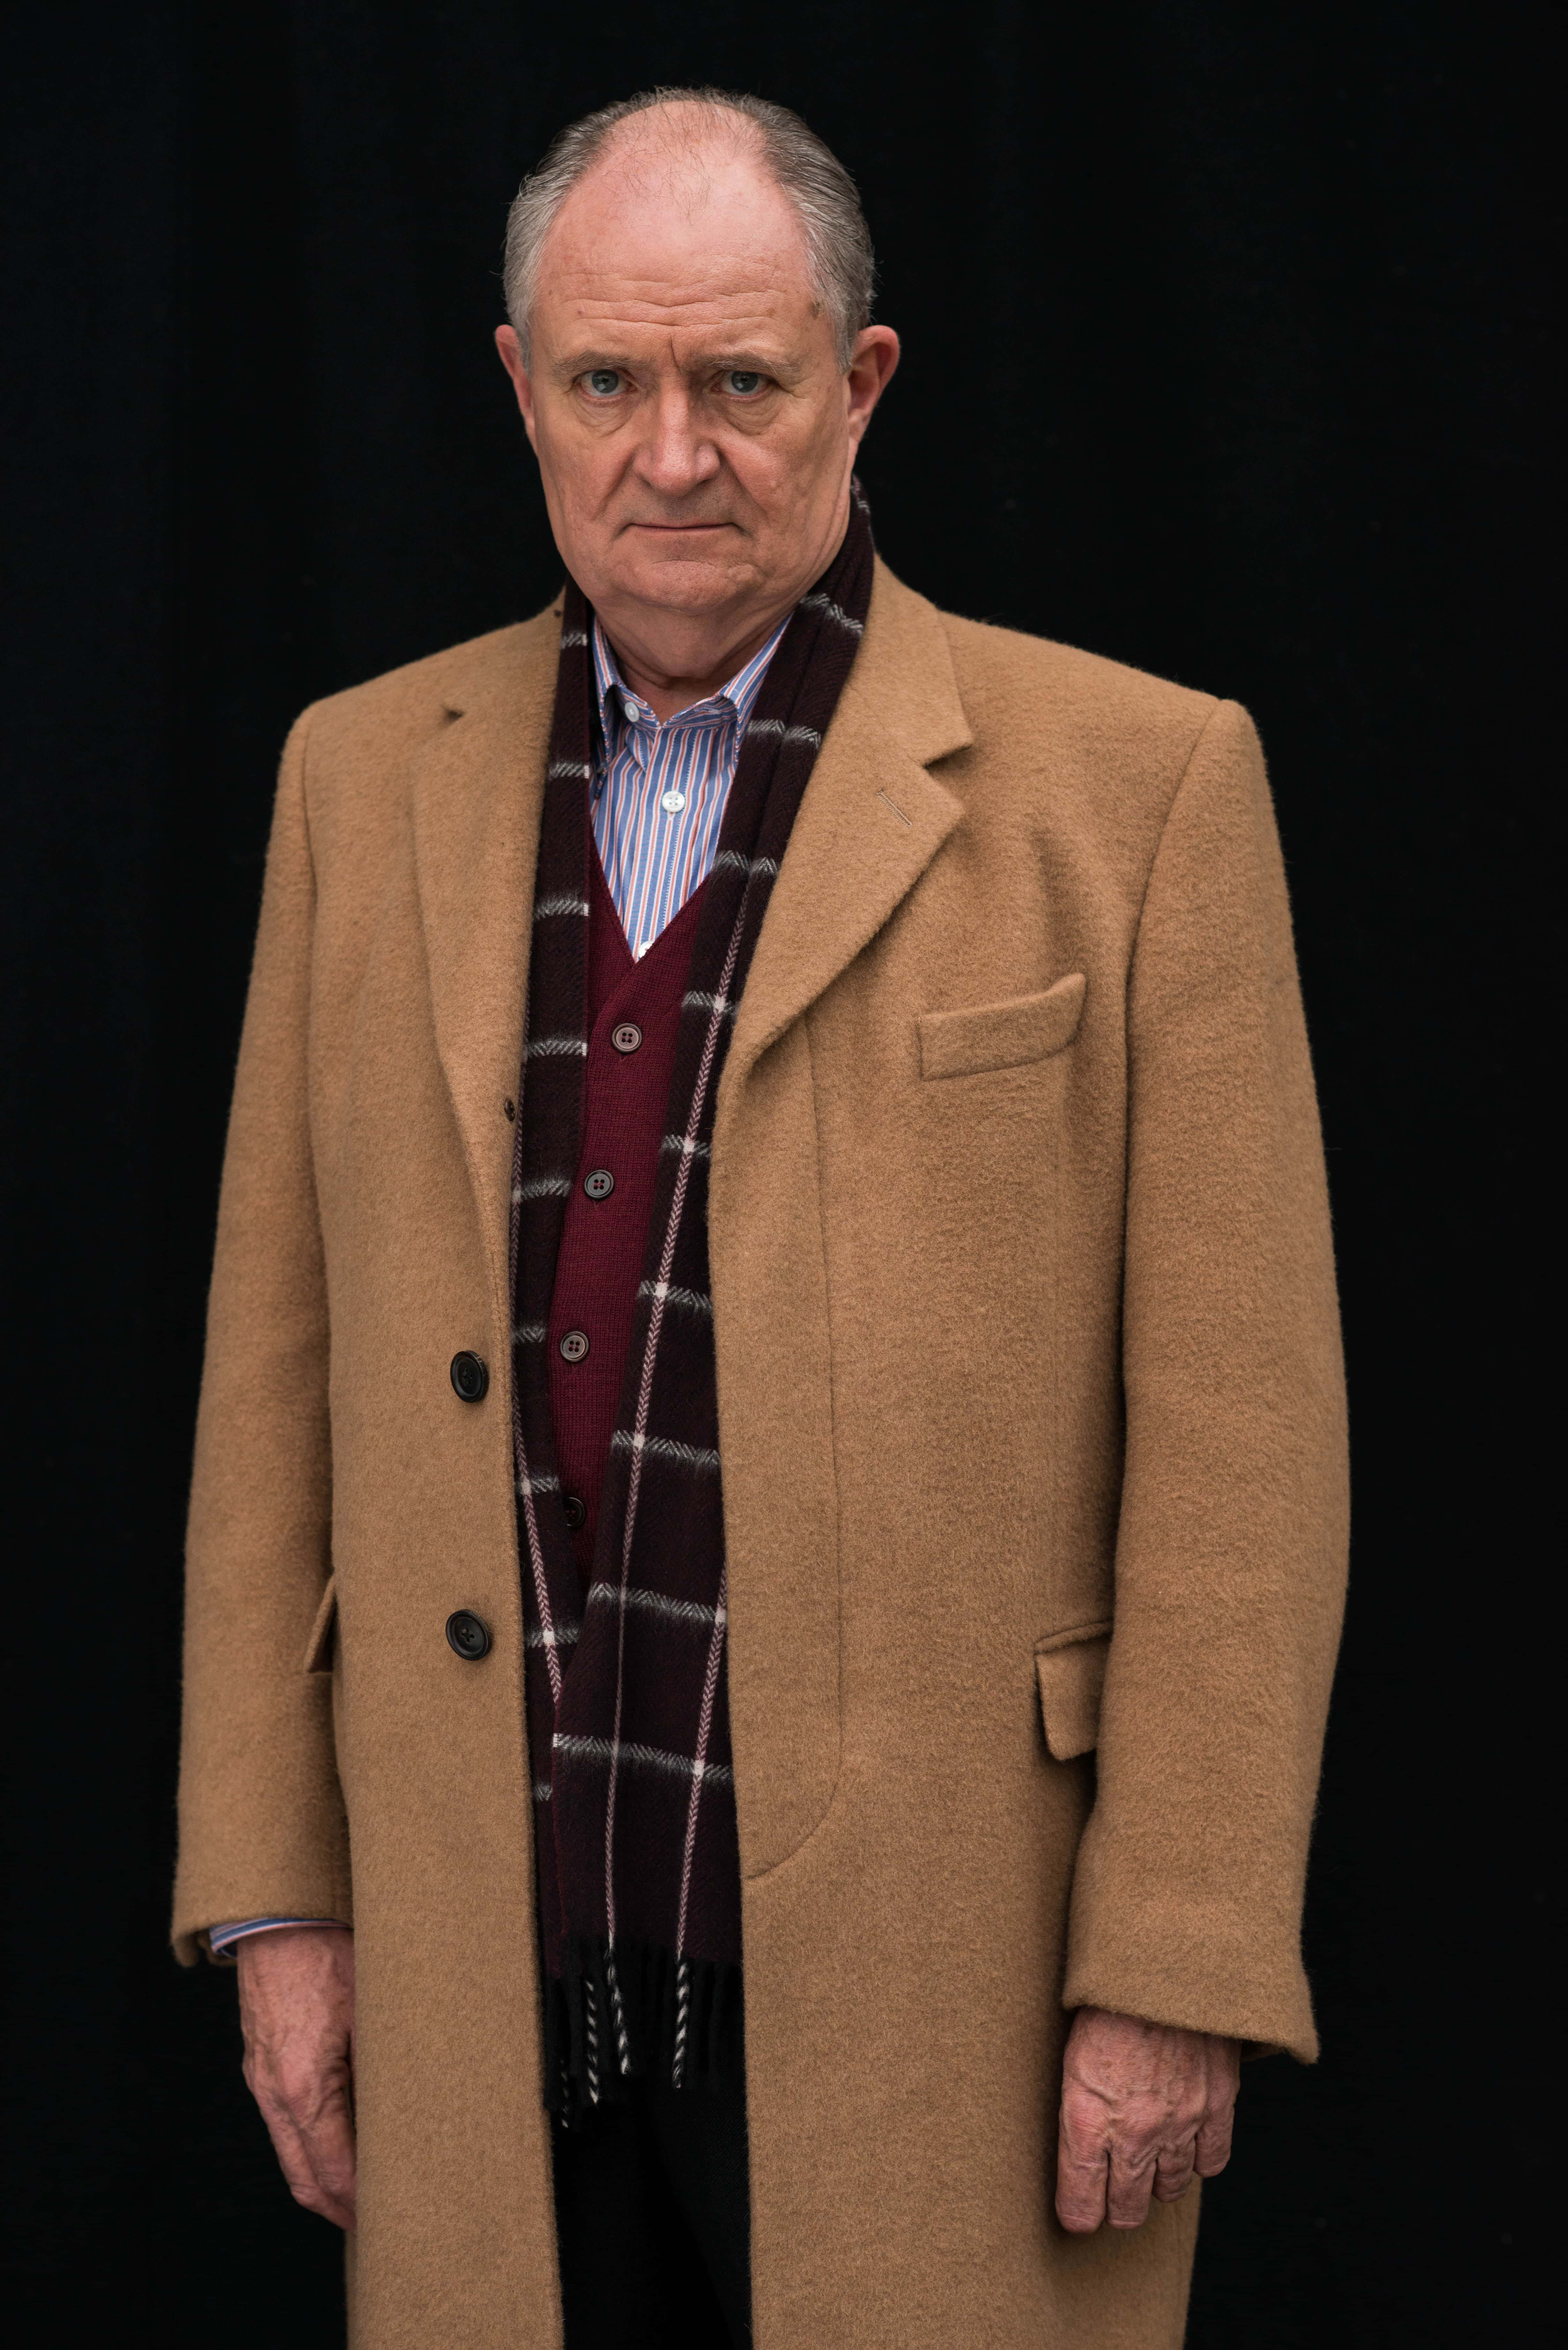 Jim Broadbent For mobile